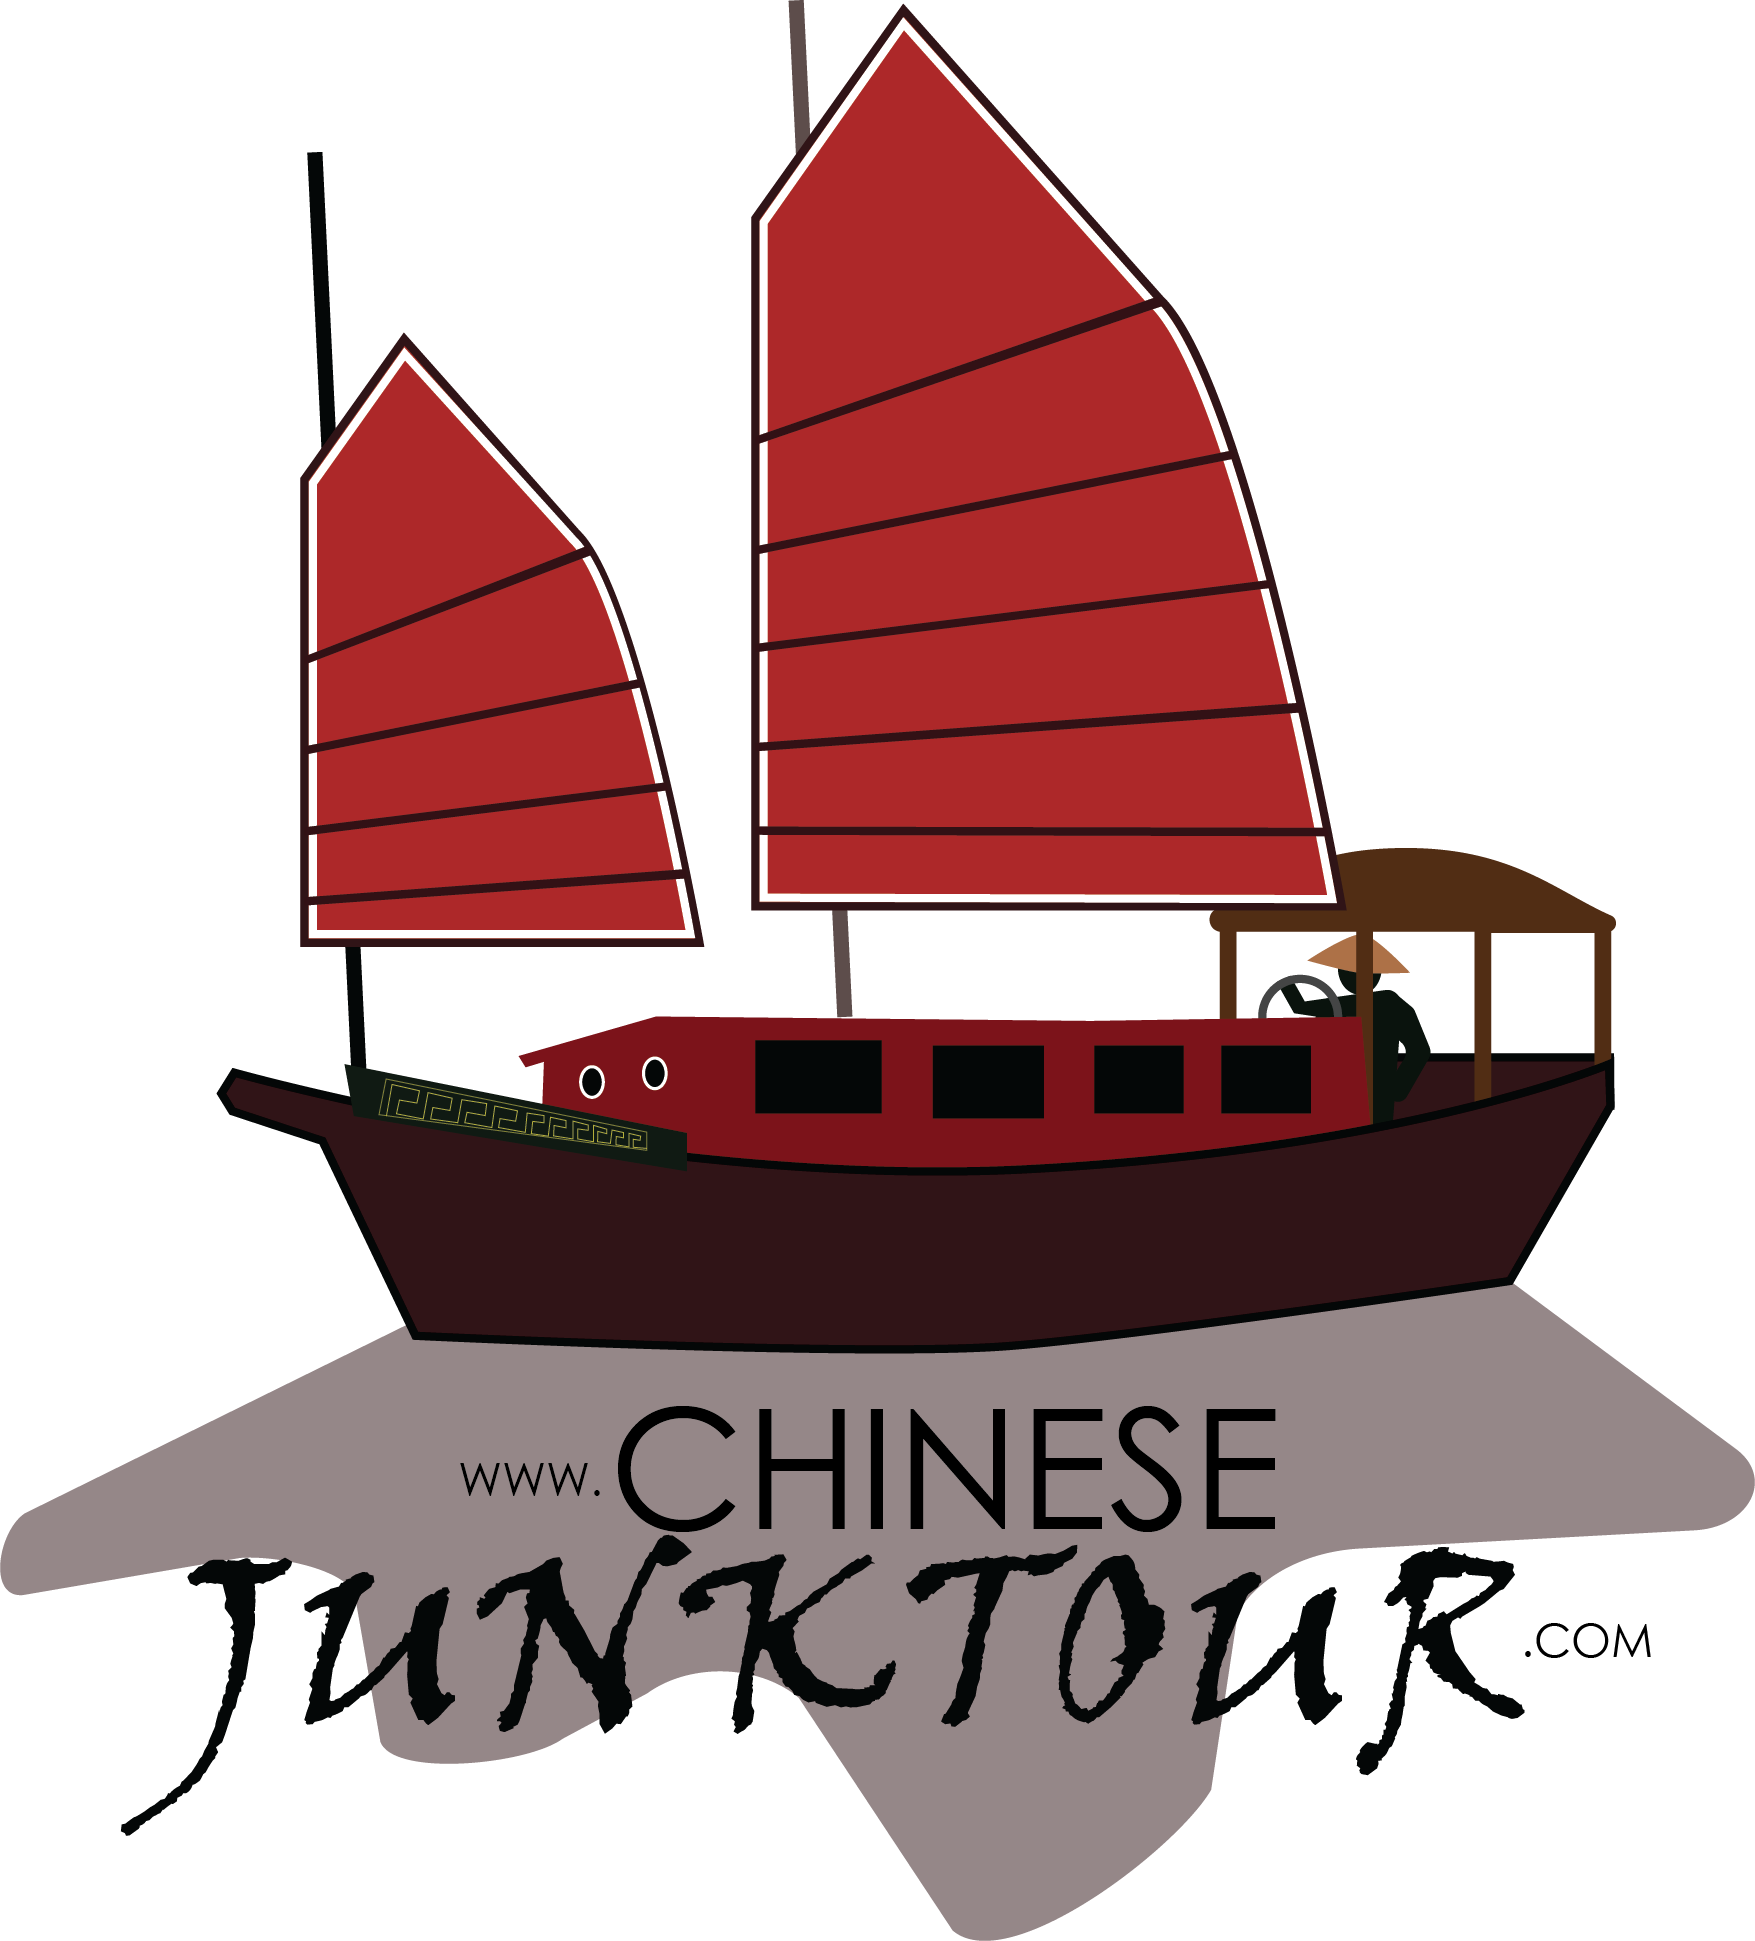 Asian vector boat. Collection of chinese